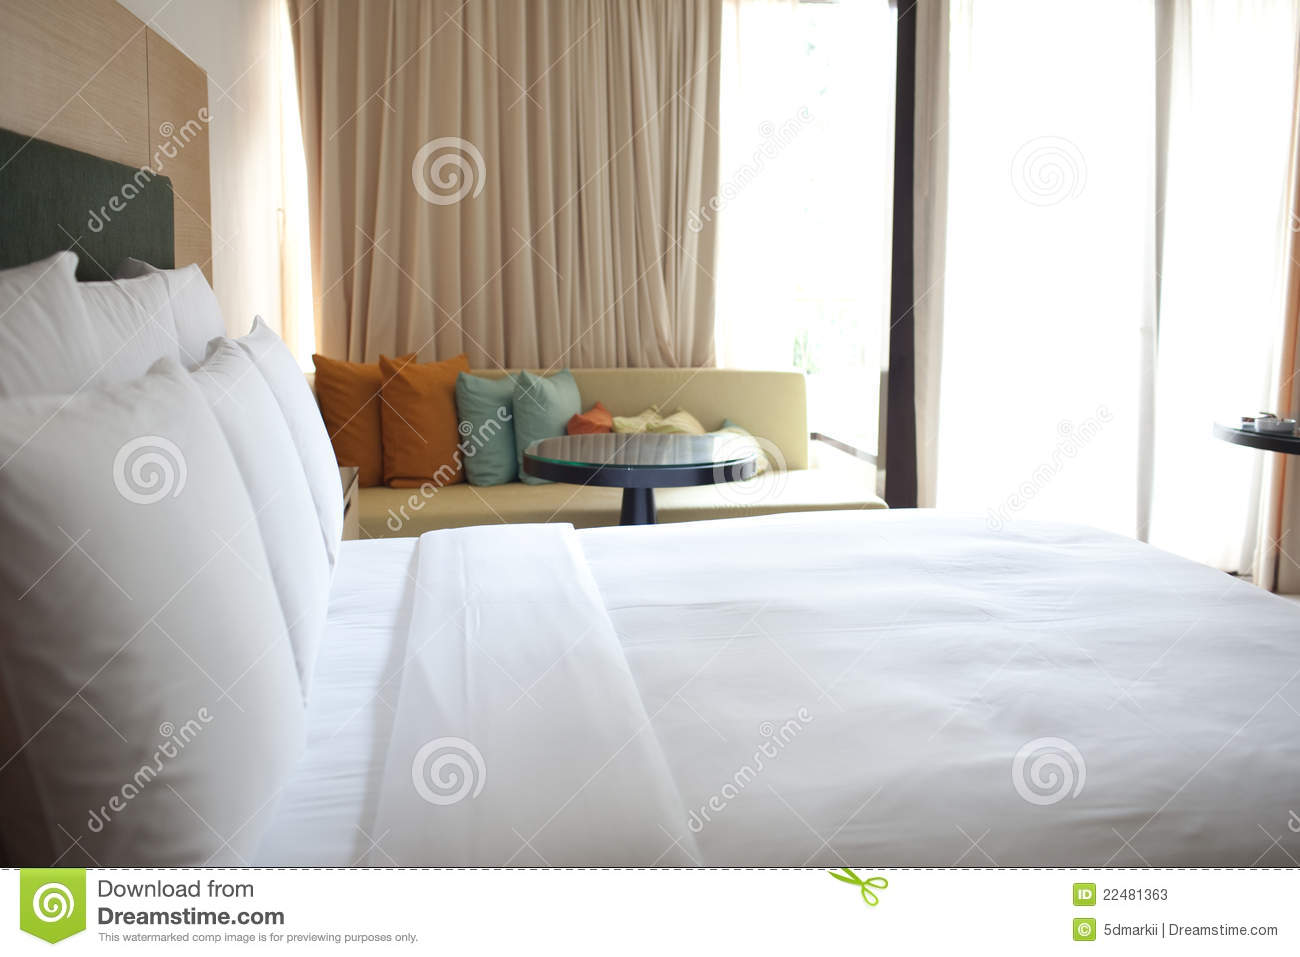 Hotel room bed and sofa stock photos image 22481363 for Sofa bed thailand